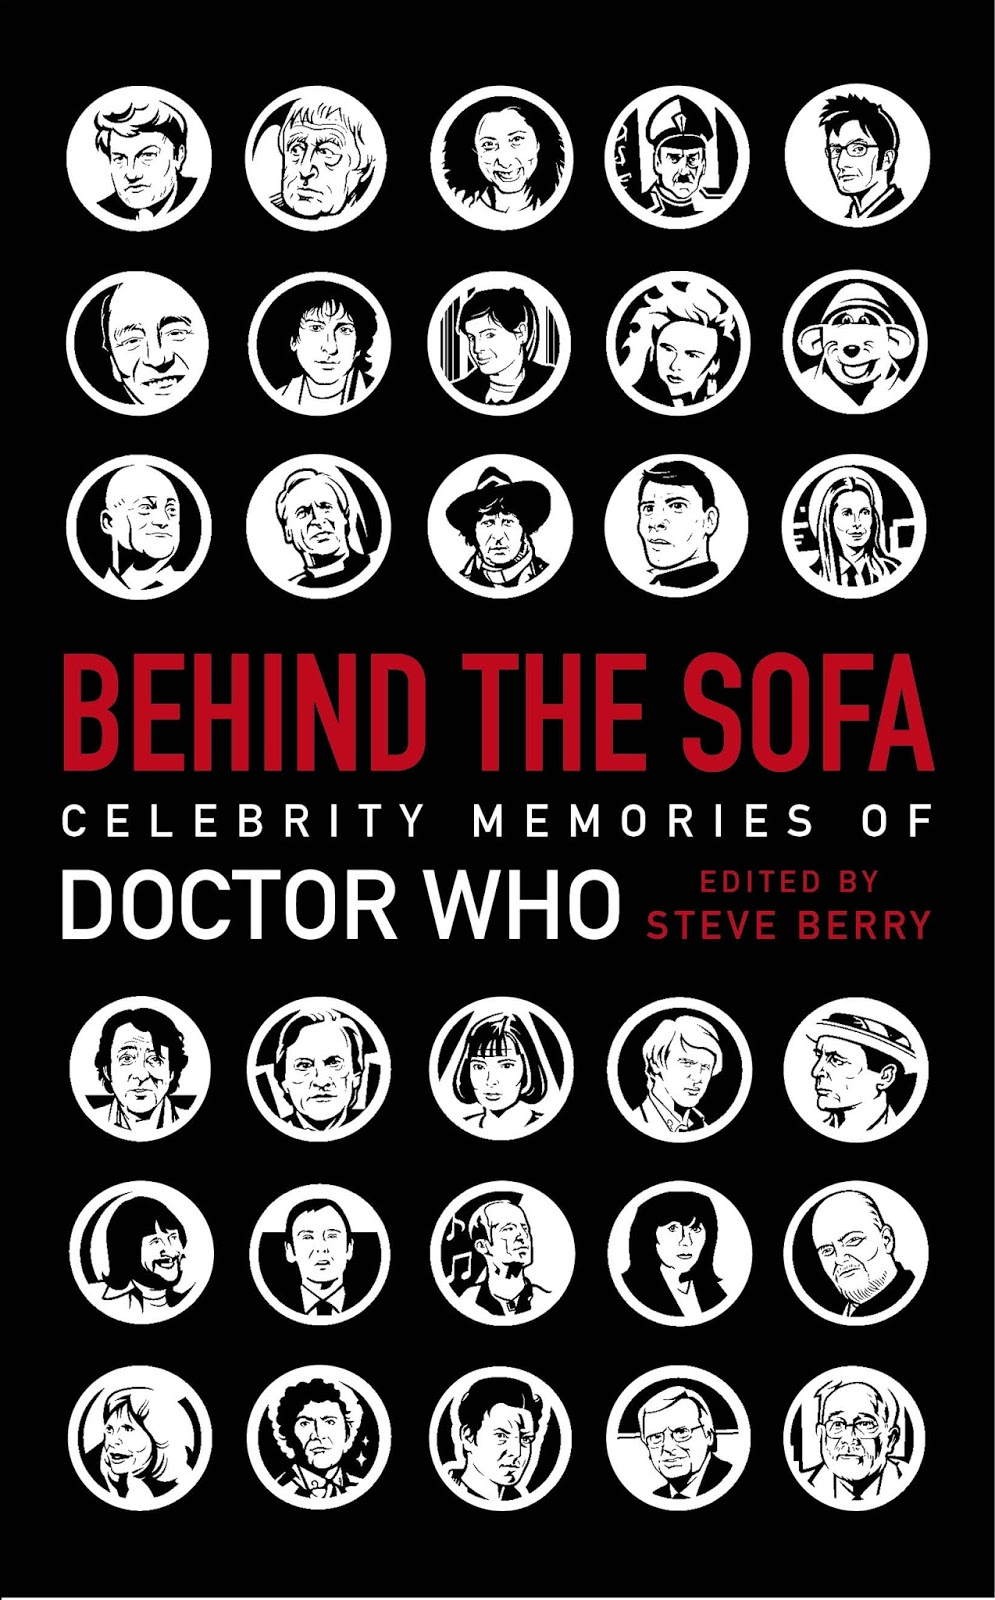 Behind the Sofa: Celebrity Memories of Dr Who edited by Steve Berry